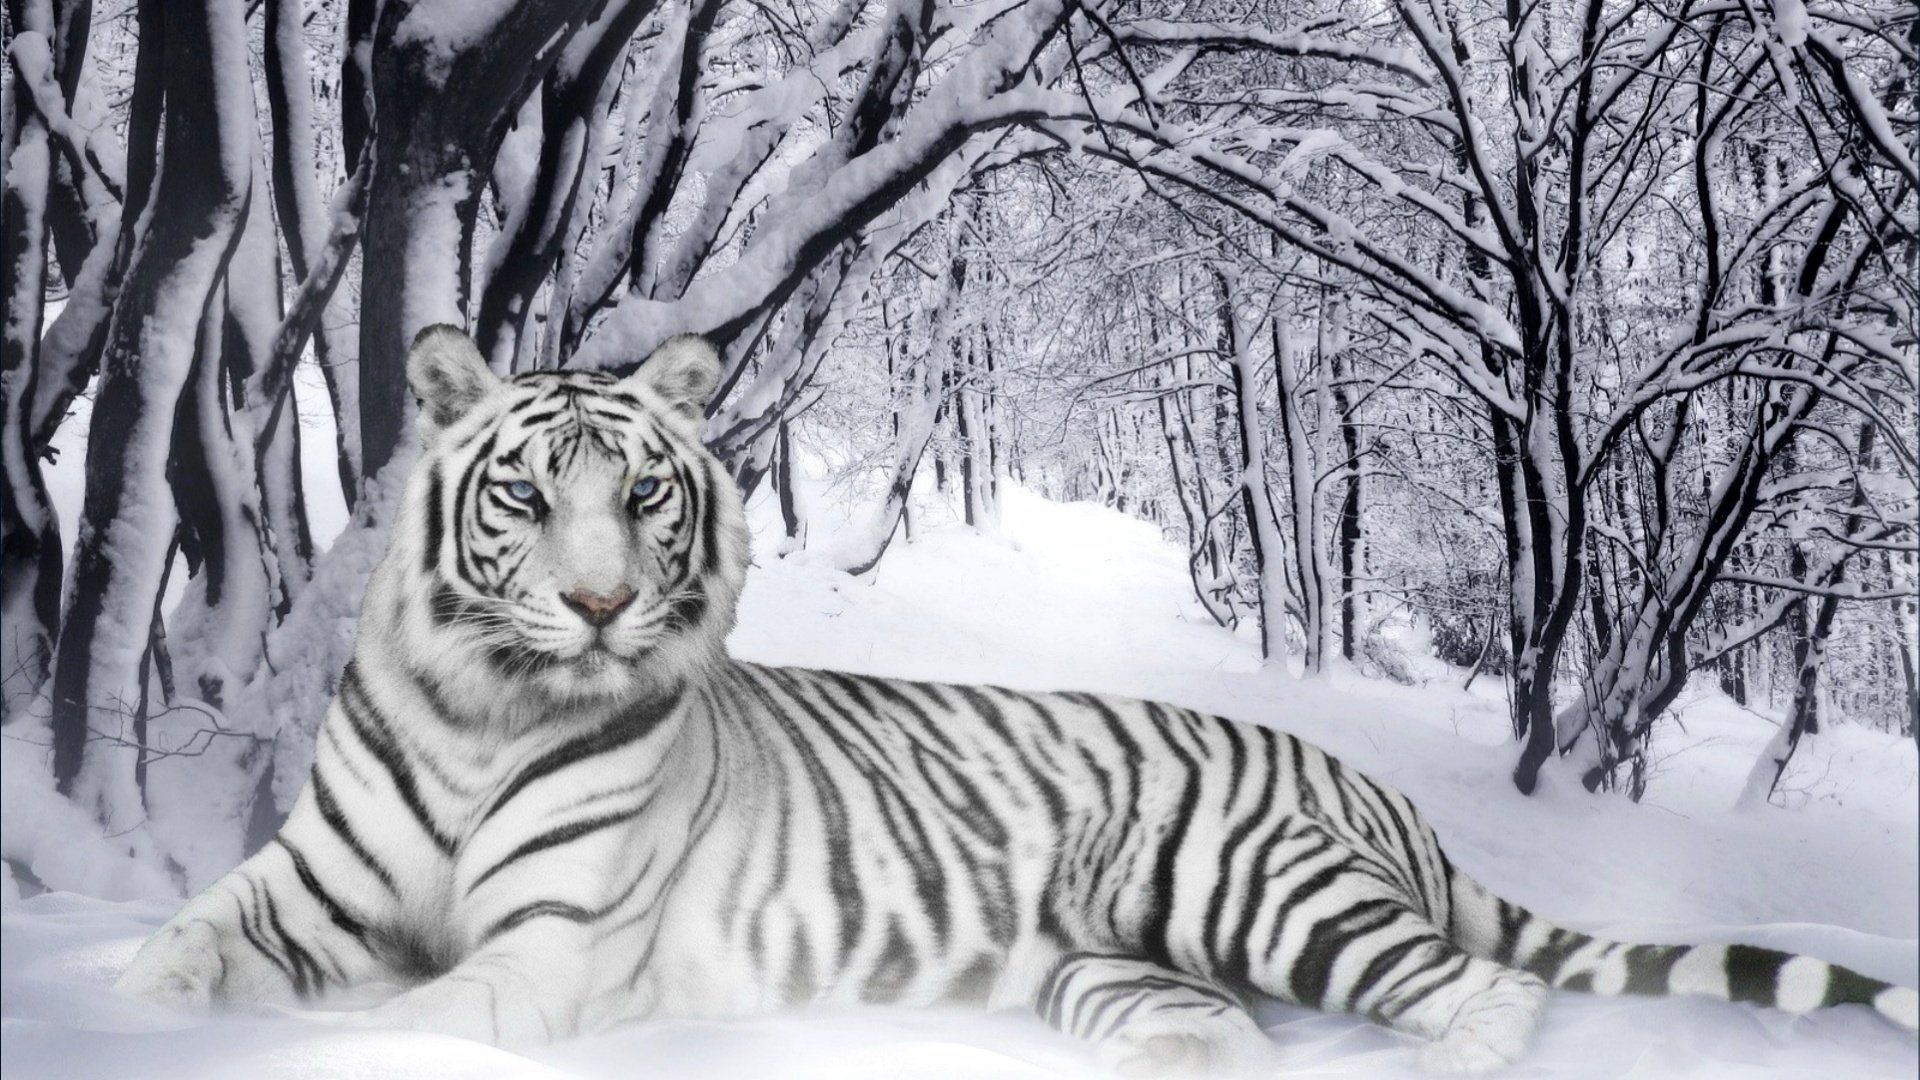 Royal bengal tiger is a great wallpaper for your computer desktop and - D Animated Tiger Wallpapers D Wallpaper Hd